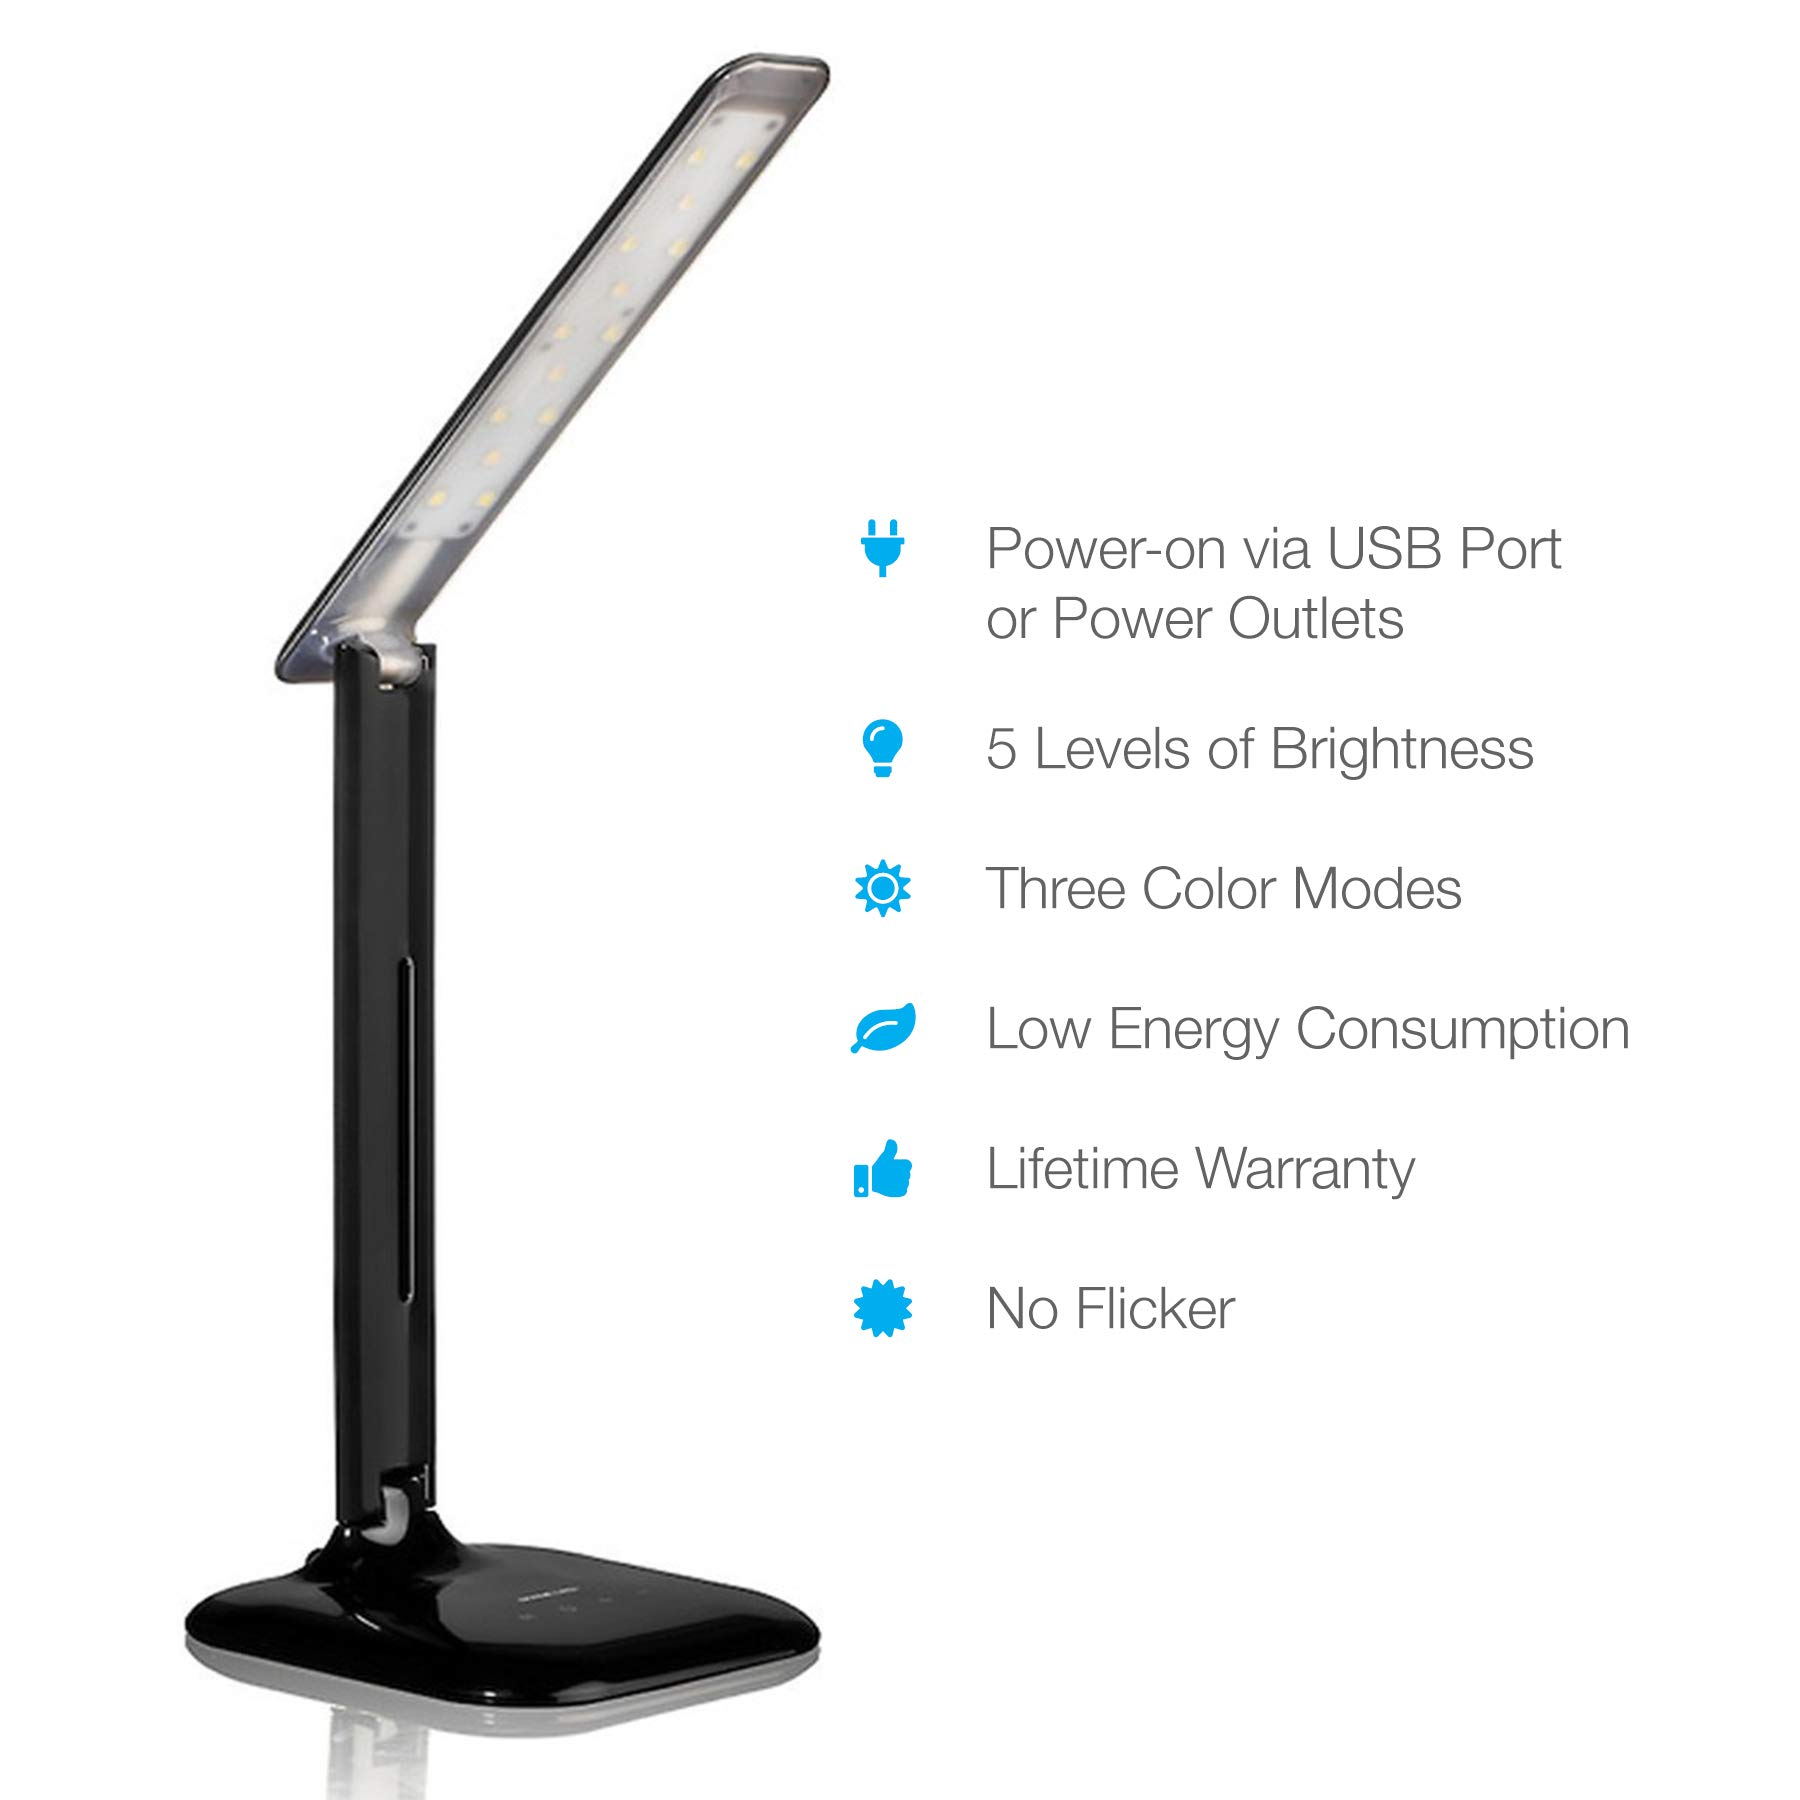 Vont Dimmable LED Desk Lamp - Elegant, Modern and Adjustable - 3 Colors - 5 Brightness Levels - Reading, Studying & Relaxation Modes -Environmentally Friendly - Black by Vont (Image #2)